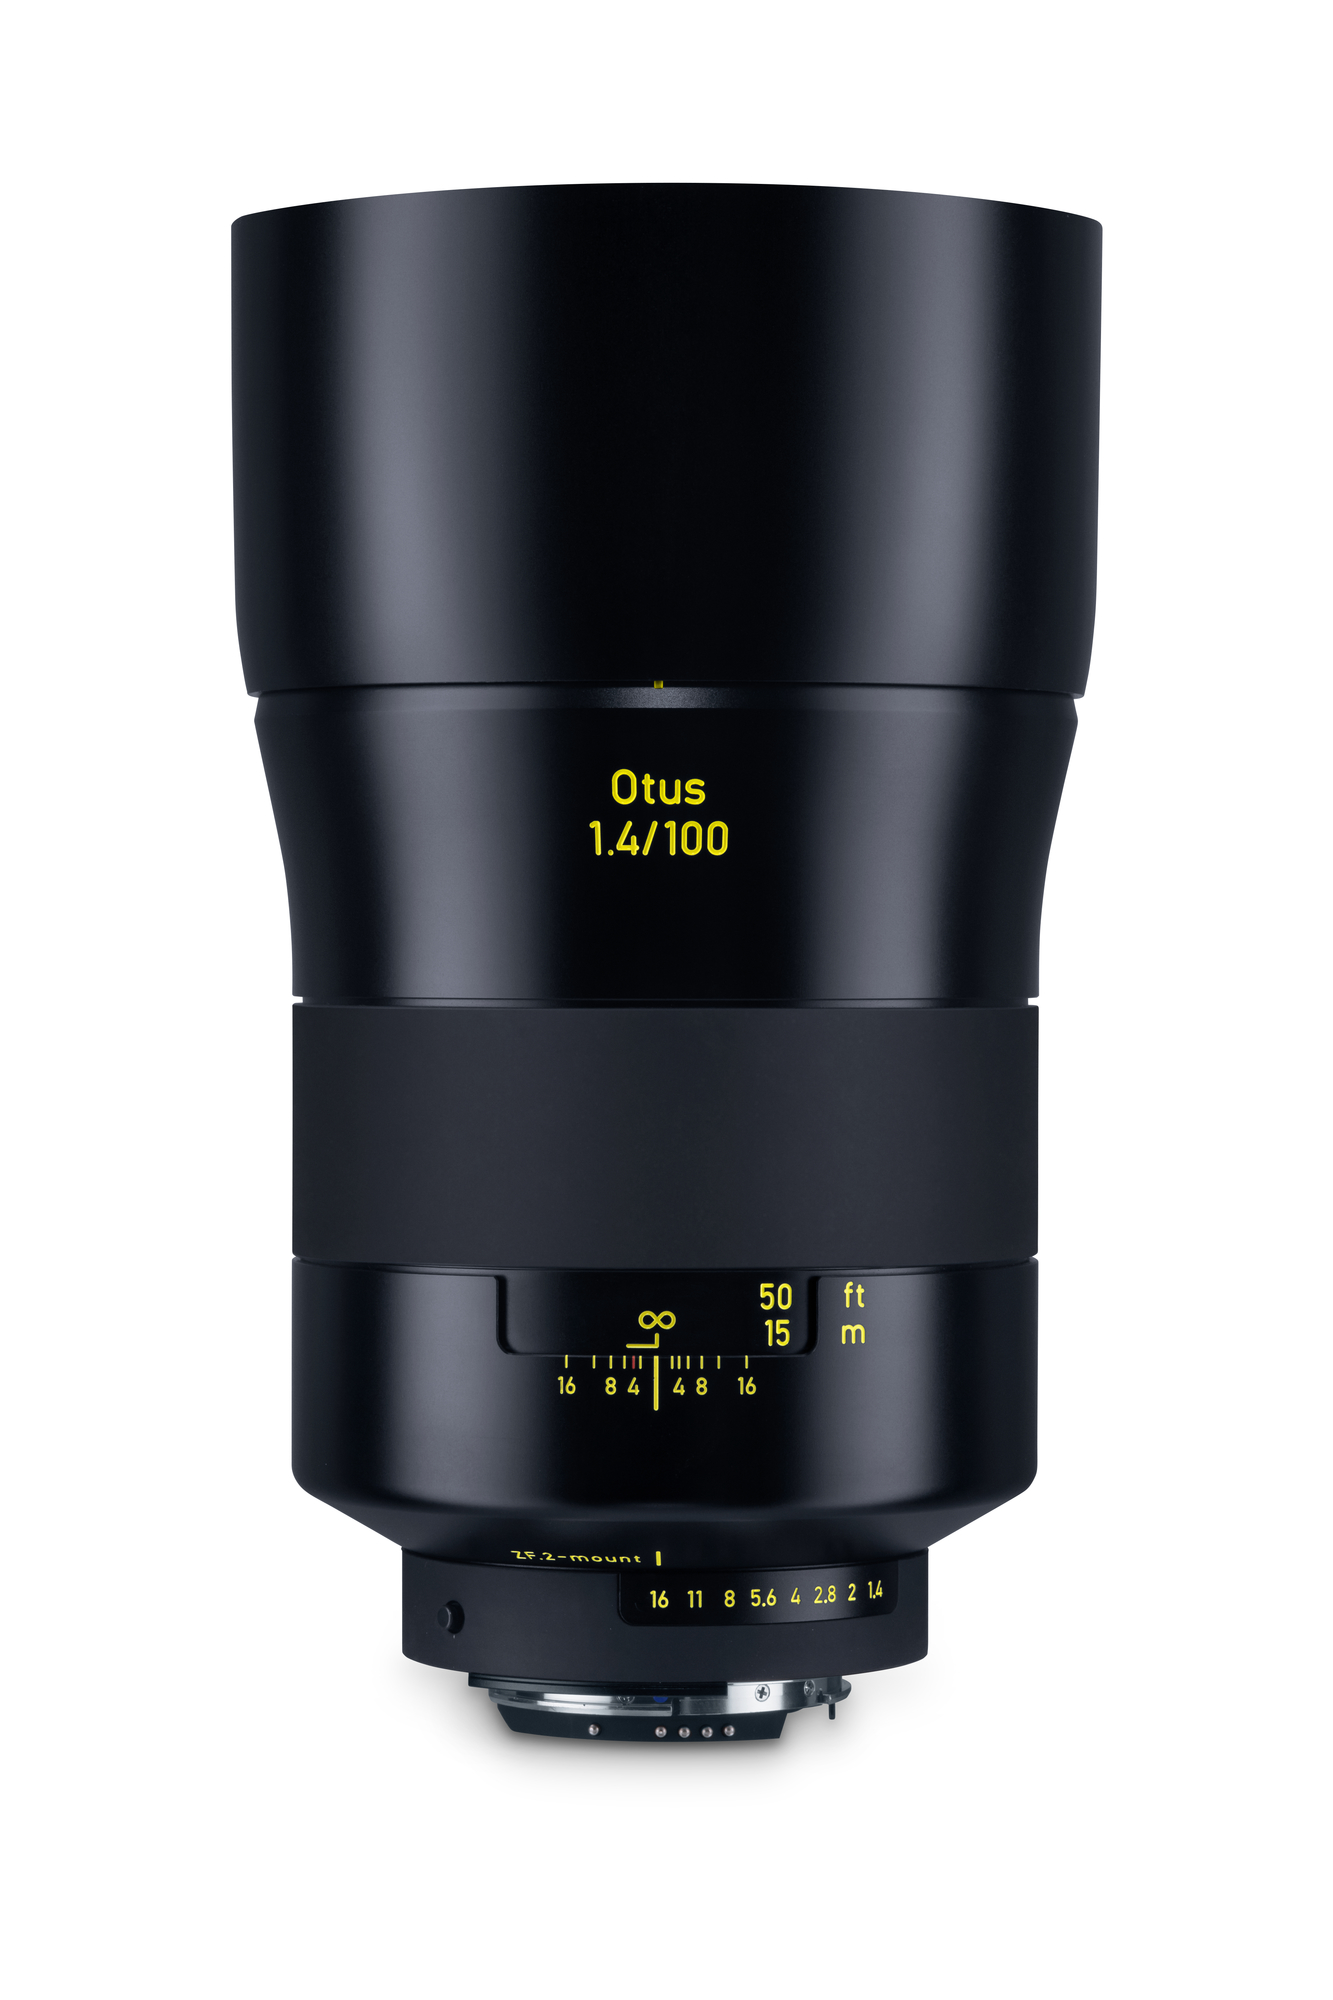 ZEISS Otus 1.4/100mm lens